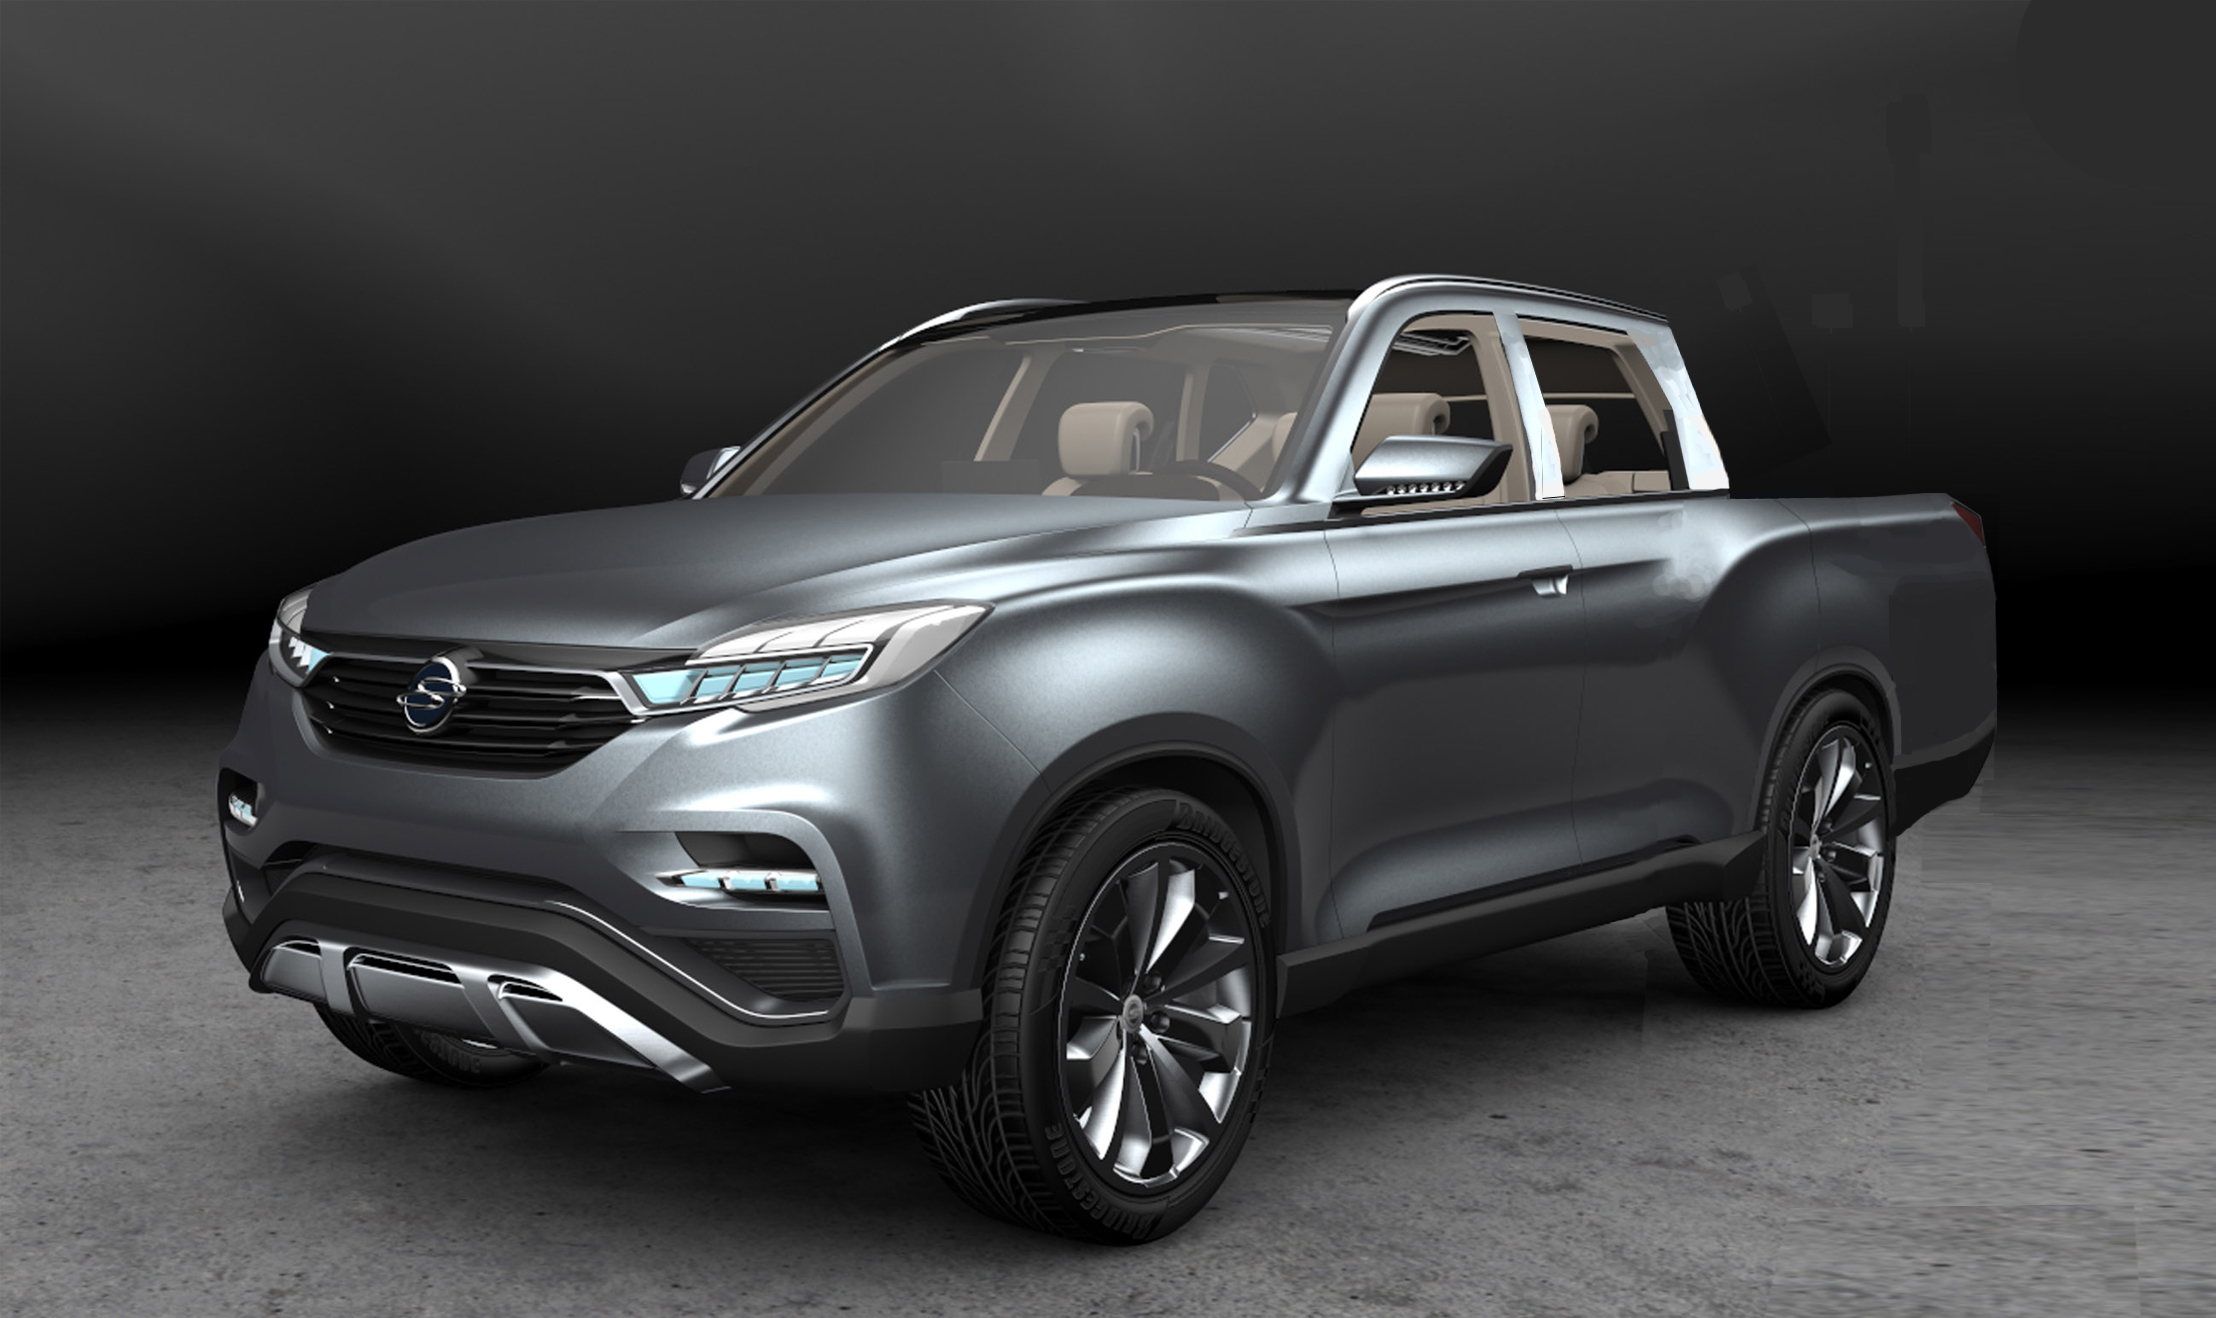 SsangYong Musso 2018 preview